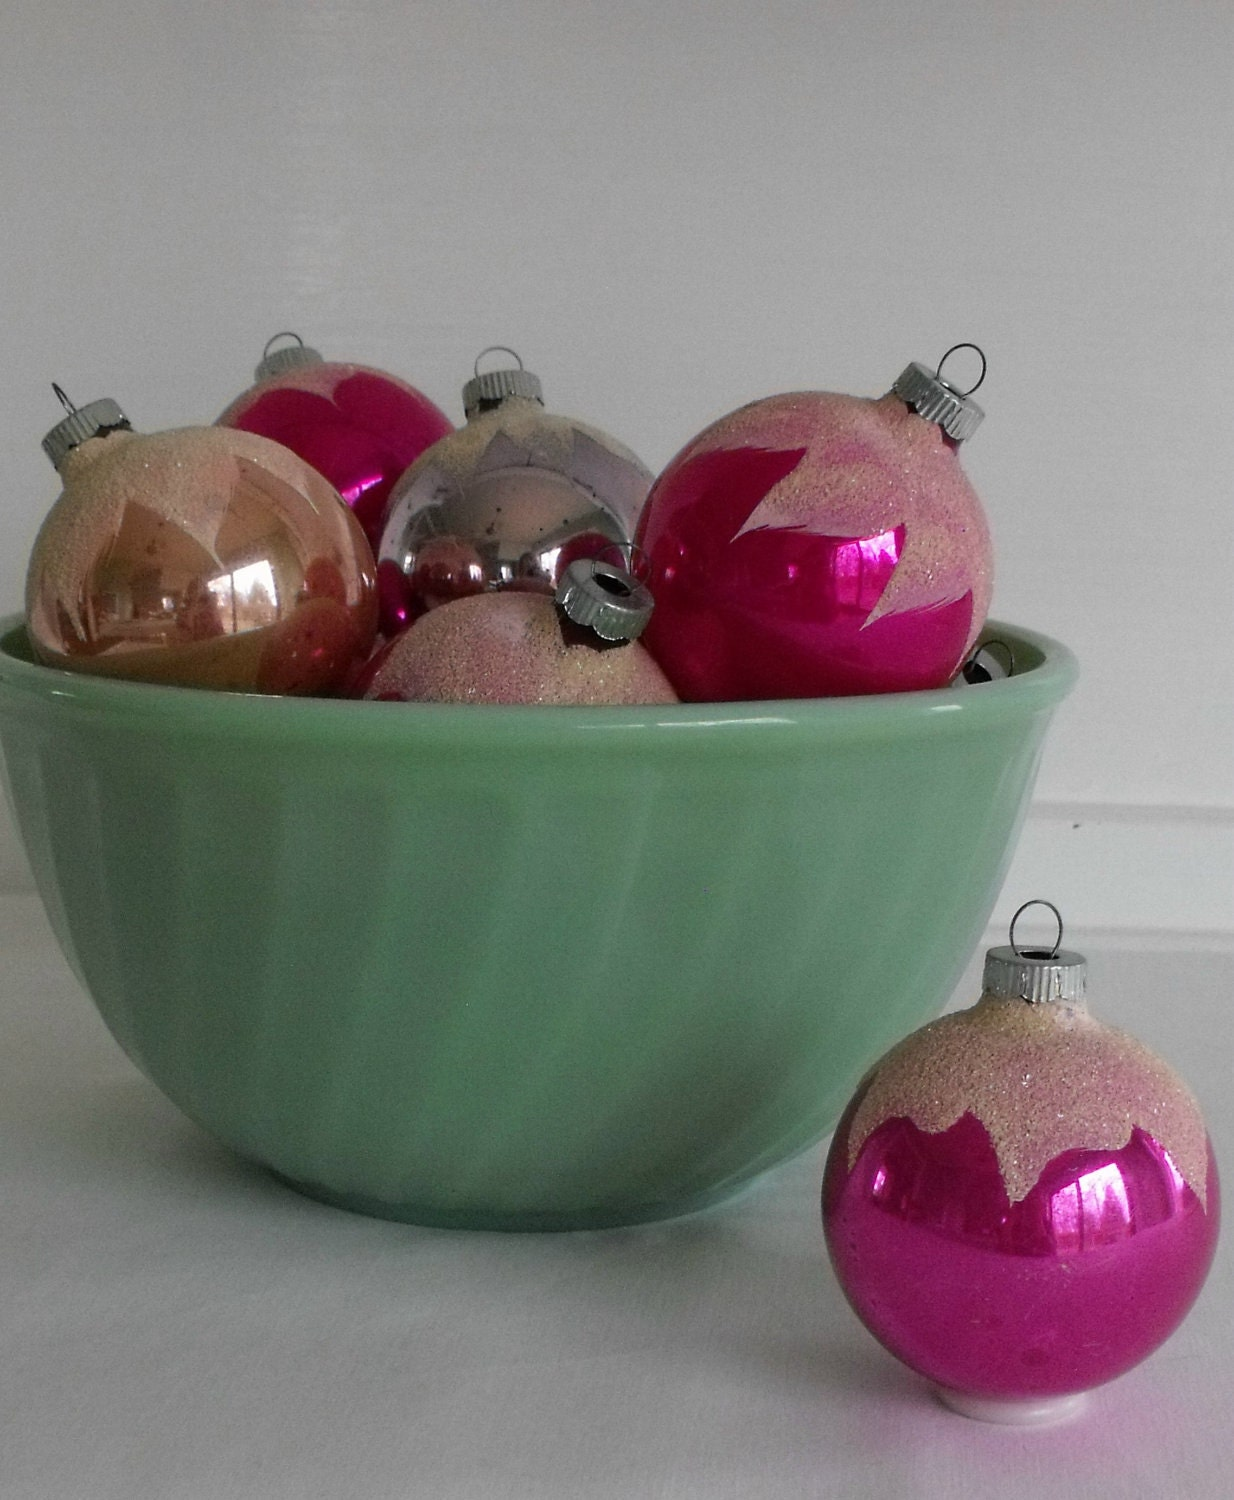 12 vintage glass Christmas ornaments, Shiny Brite snow balls in bright pastels